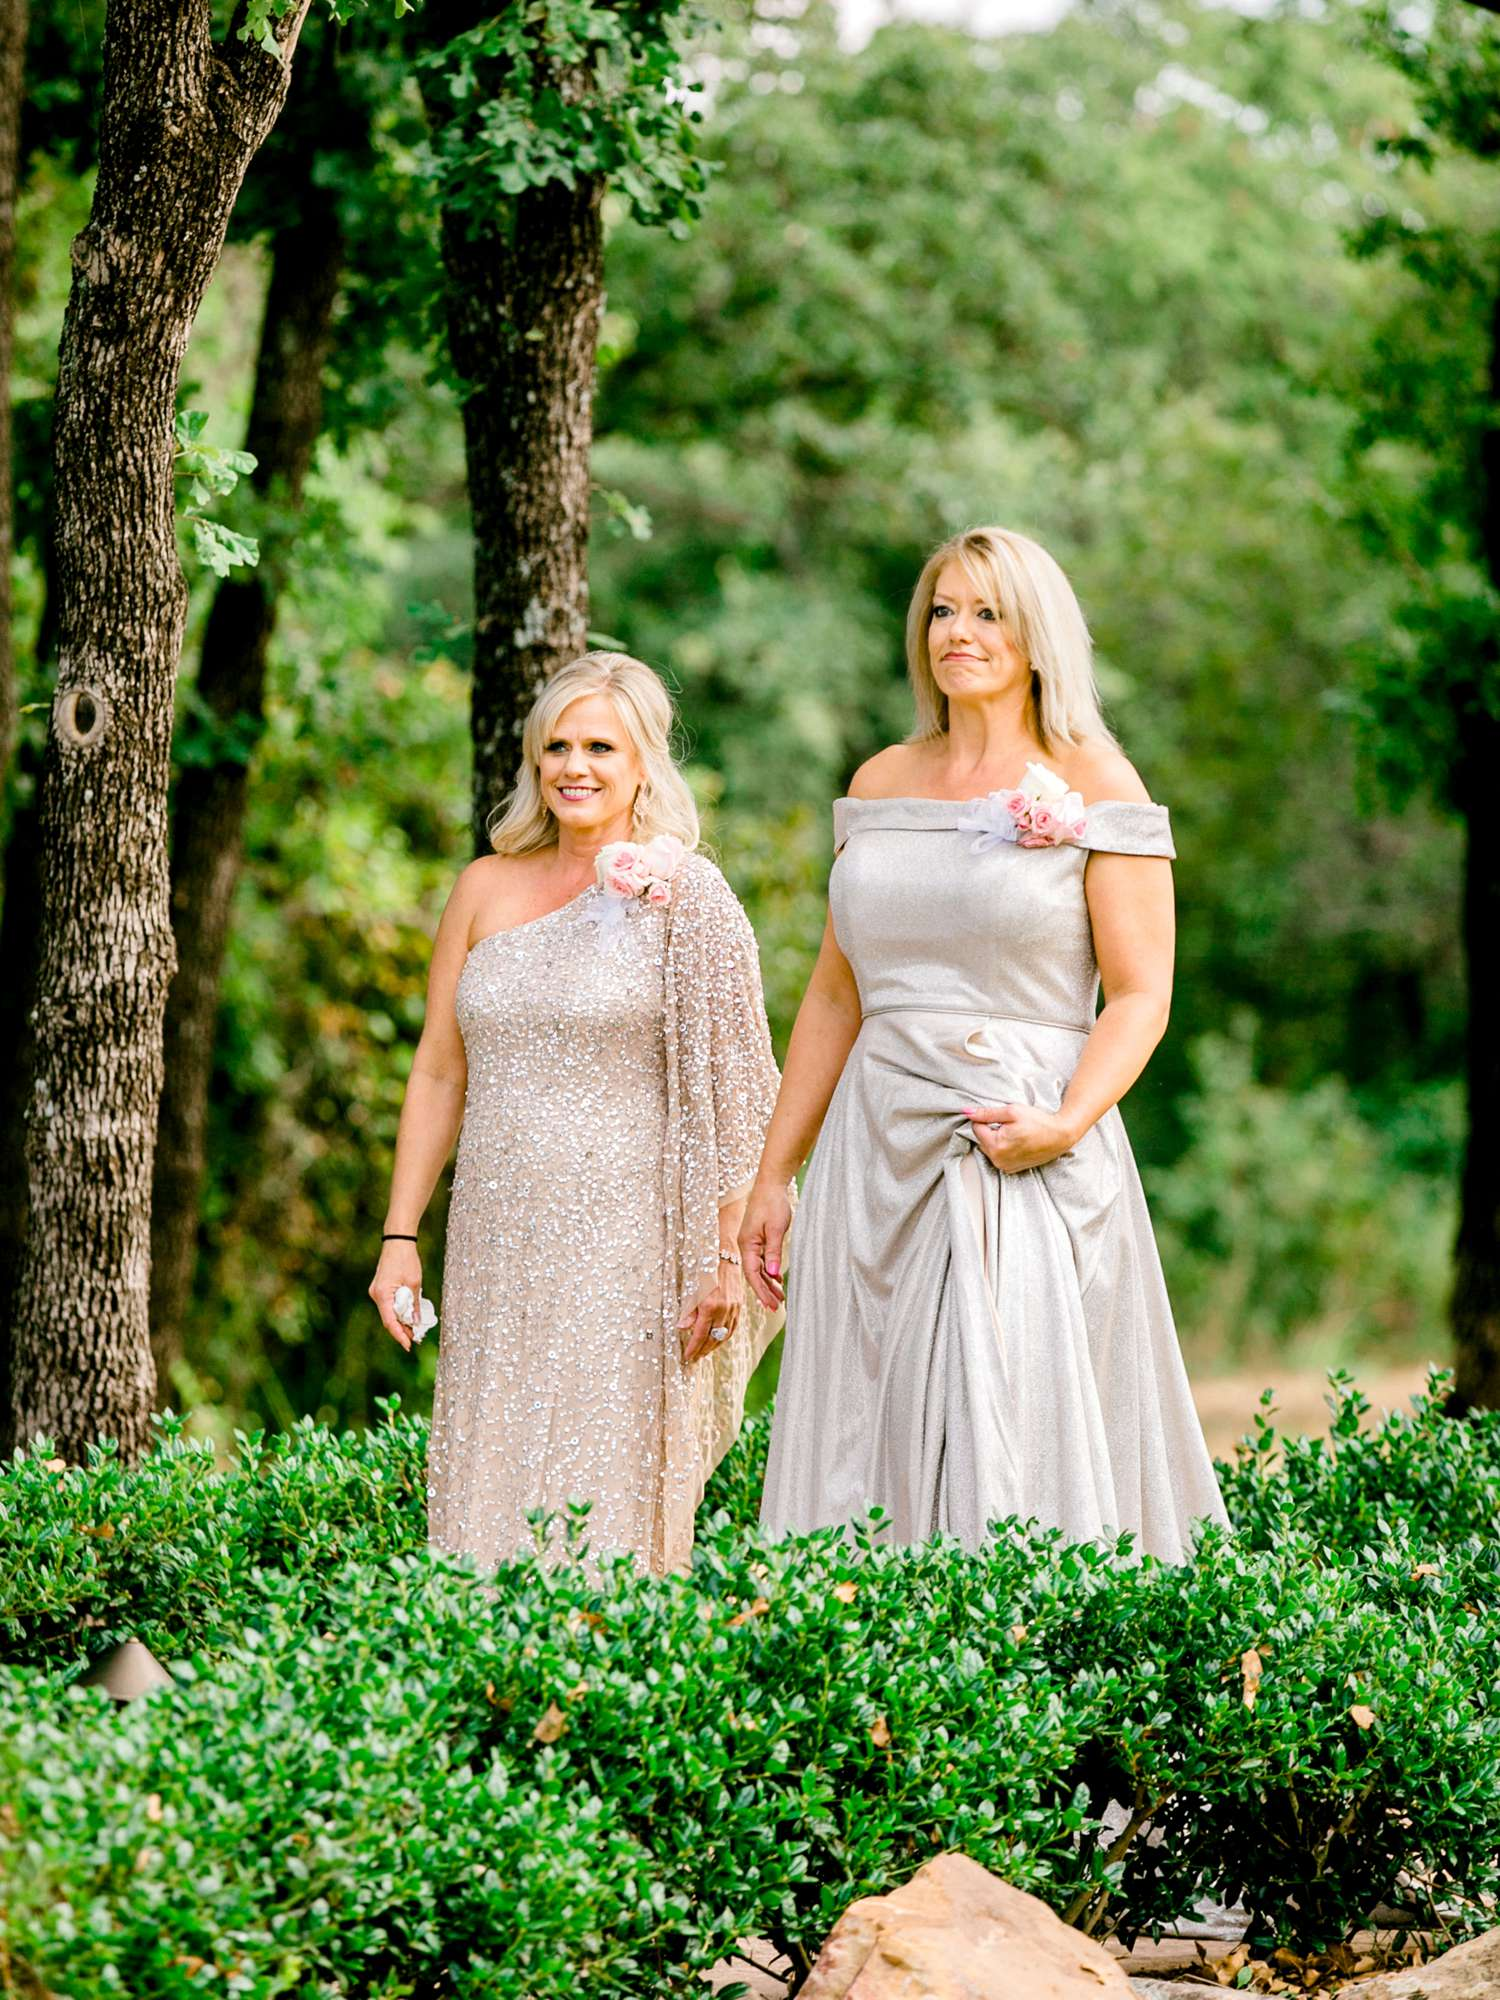 JESSICA+LYLE+NEEL+THE_SPRINGS_EVENTS_WEDDING_OKLAHOMA_ALLEEJ_PHOTOGRAPHER_0044.jpg